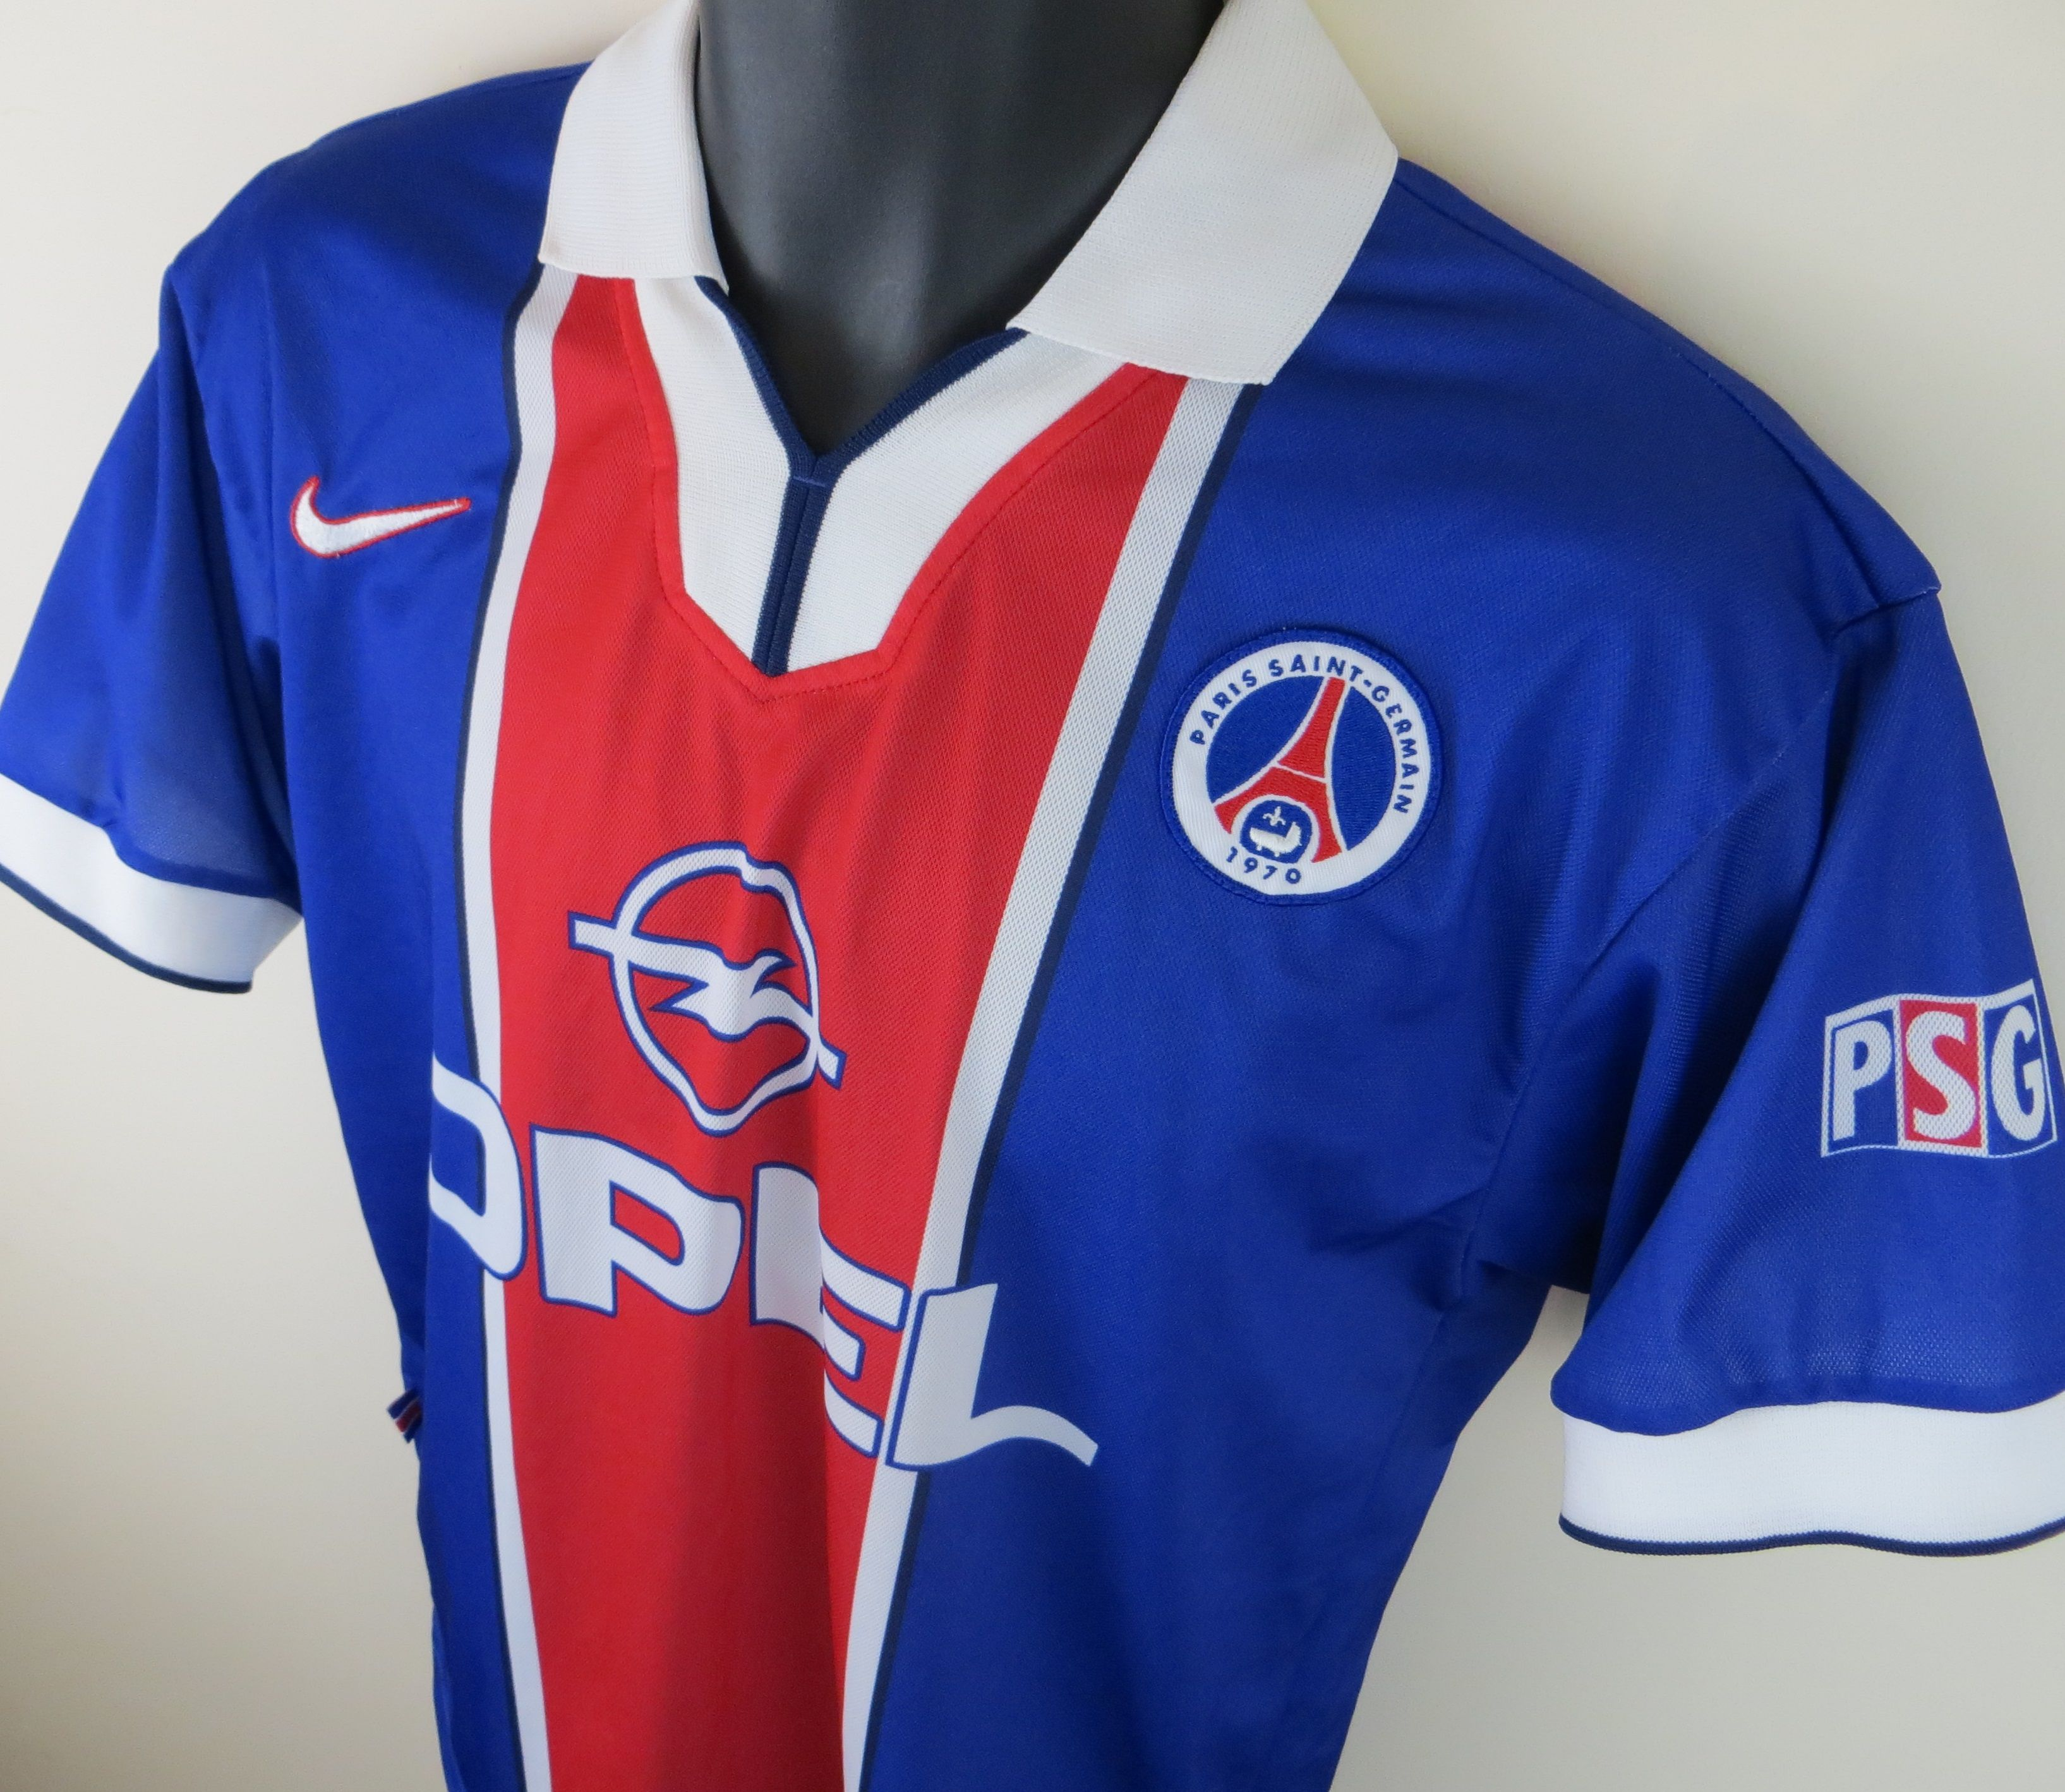 Classic Paris Saint Germain shirt by Nike  PSG  d886dcfdd44